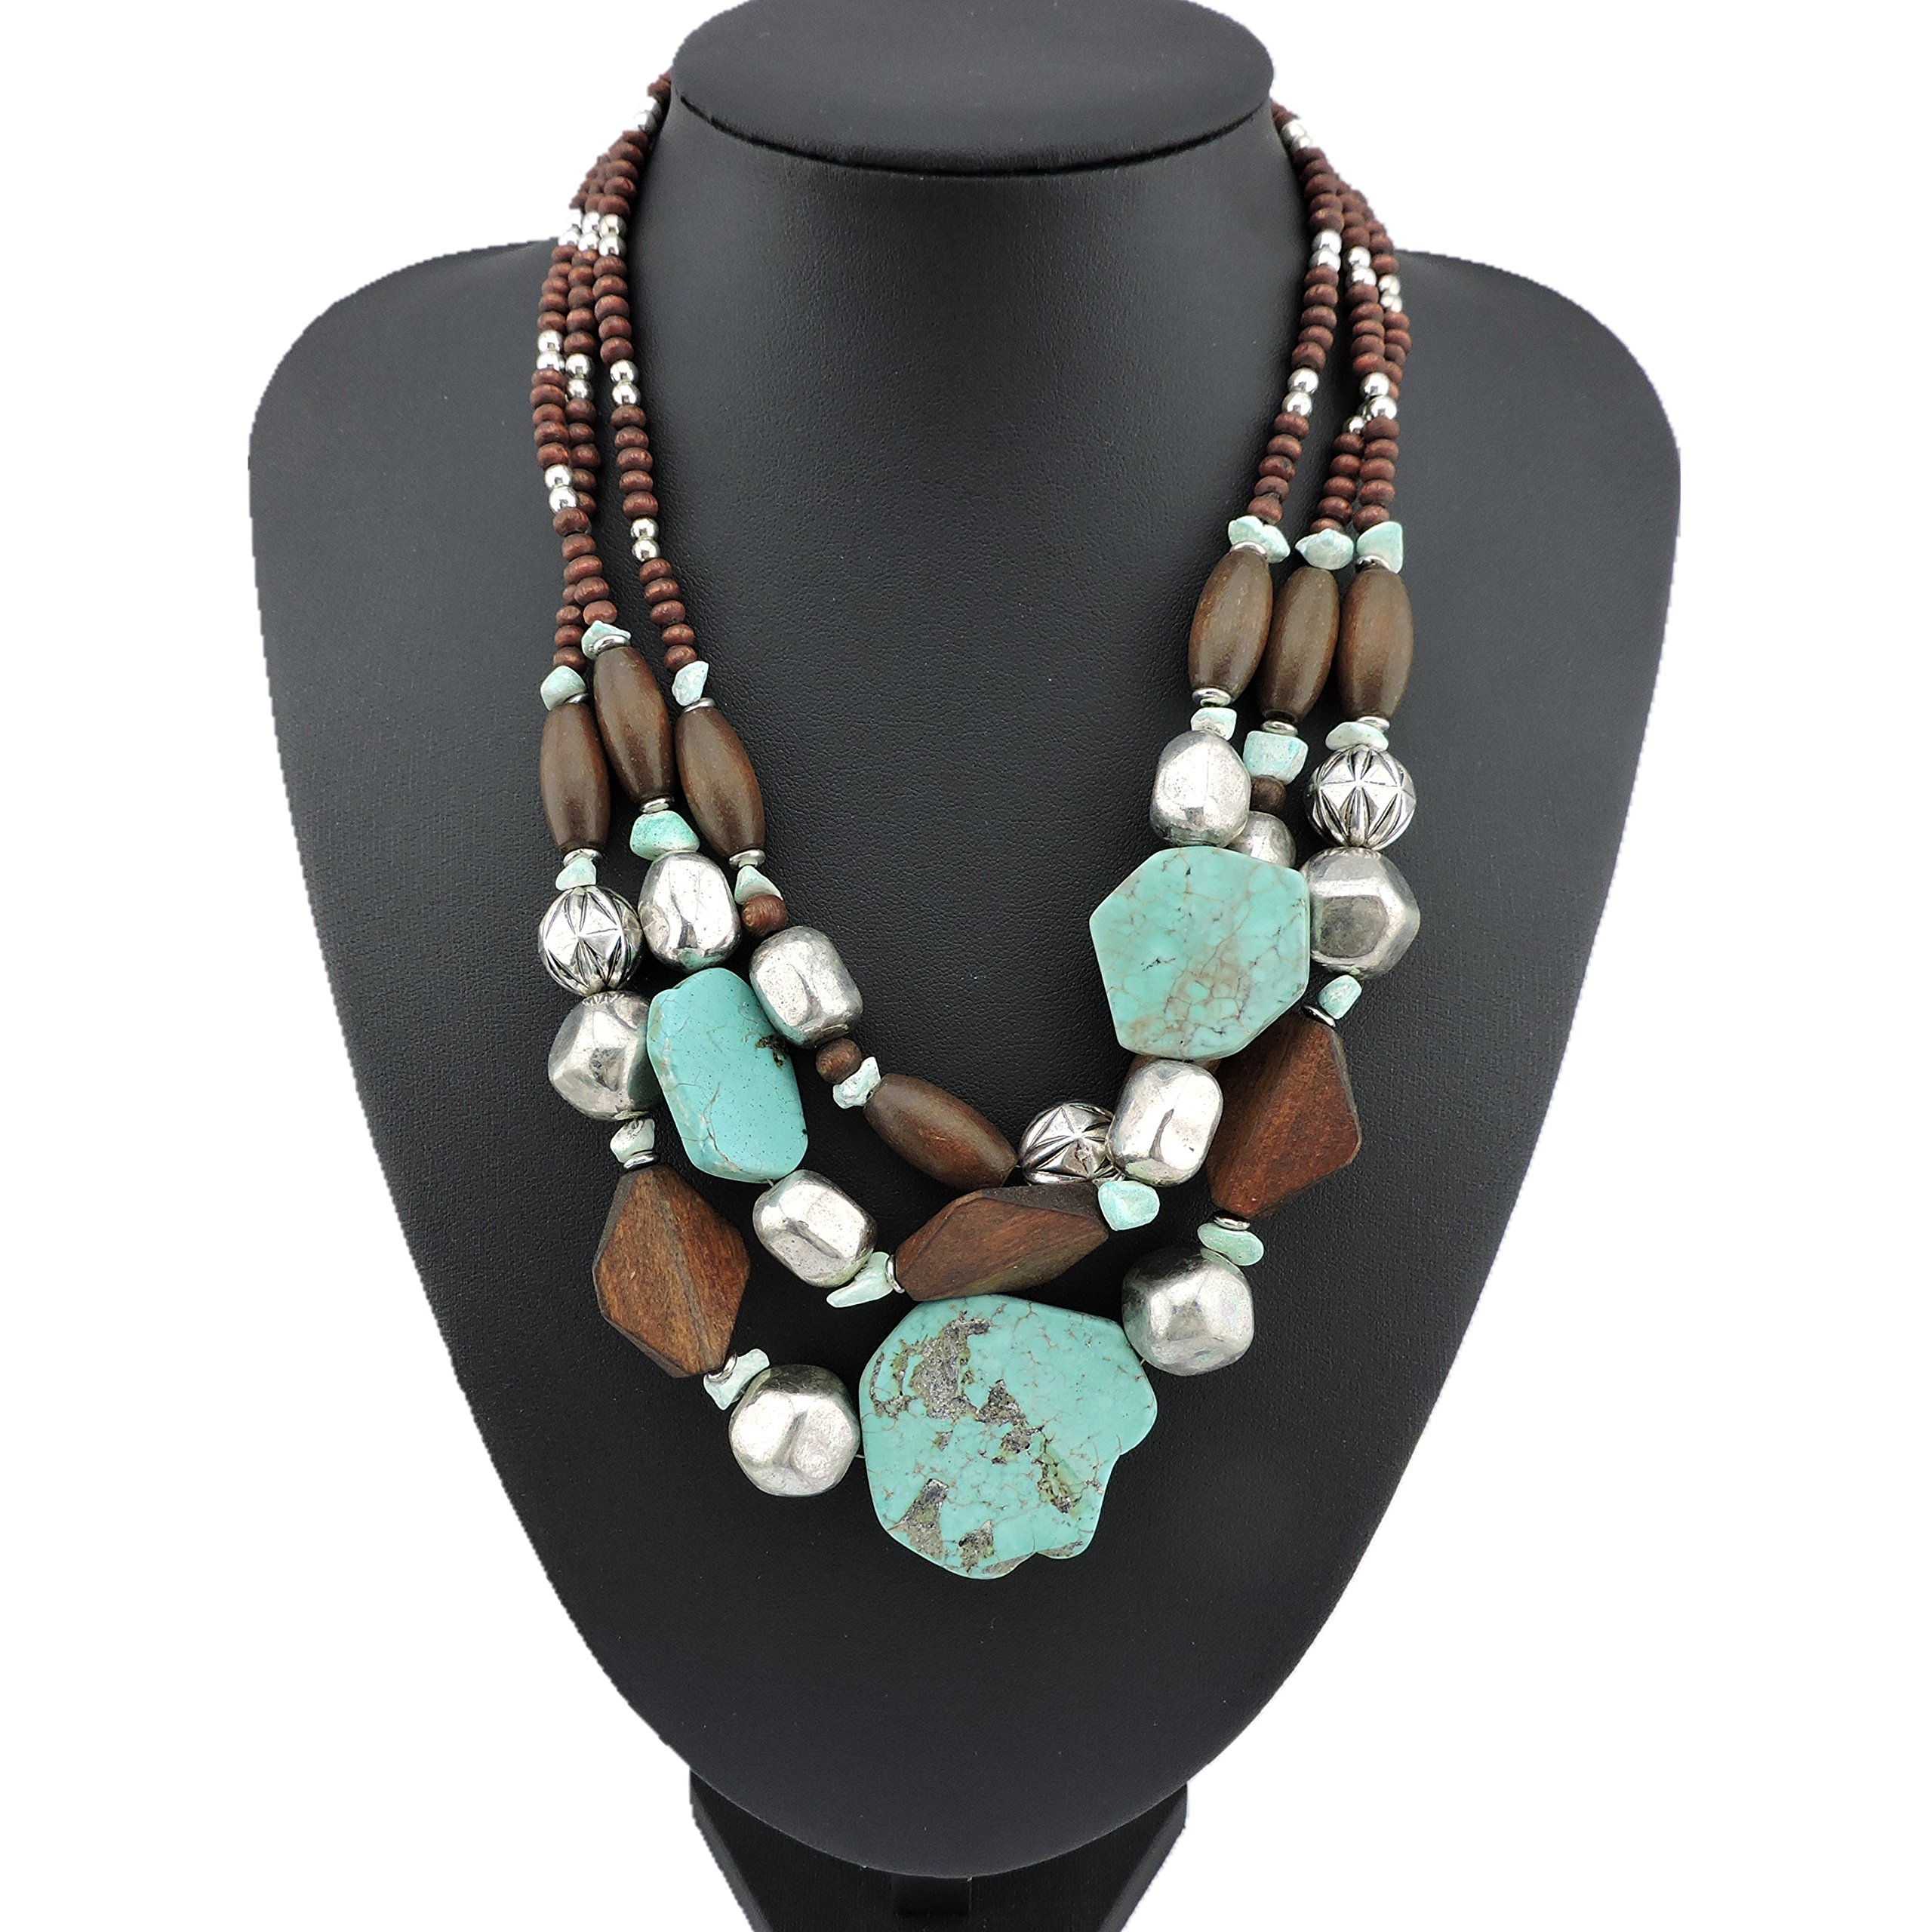 BOCAR Personalized Layered Strands Turquoise Statement Chunky Necklace for Women Gifts (124)